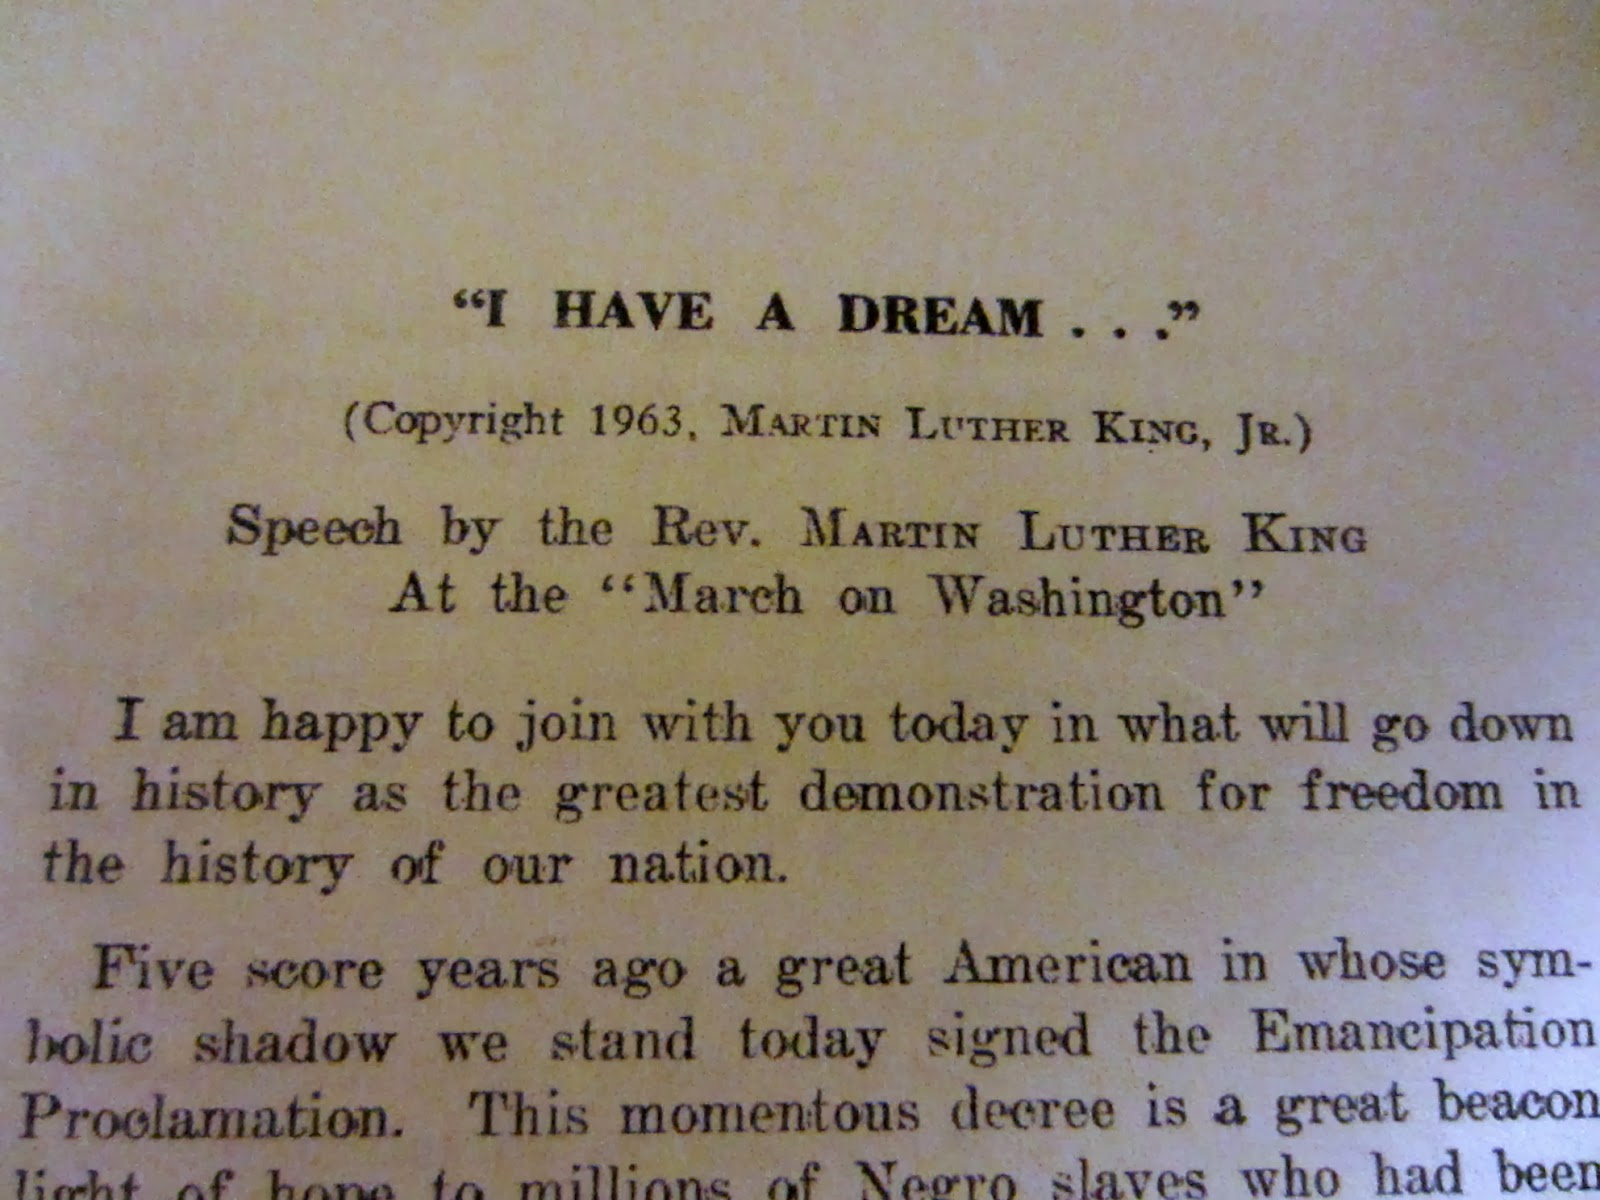 mind the gap a z memories and martin luther king i came across the transcript of martin luther king s speech i have a dream when i was sorting through some papers at home